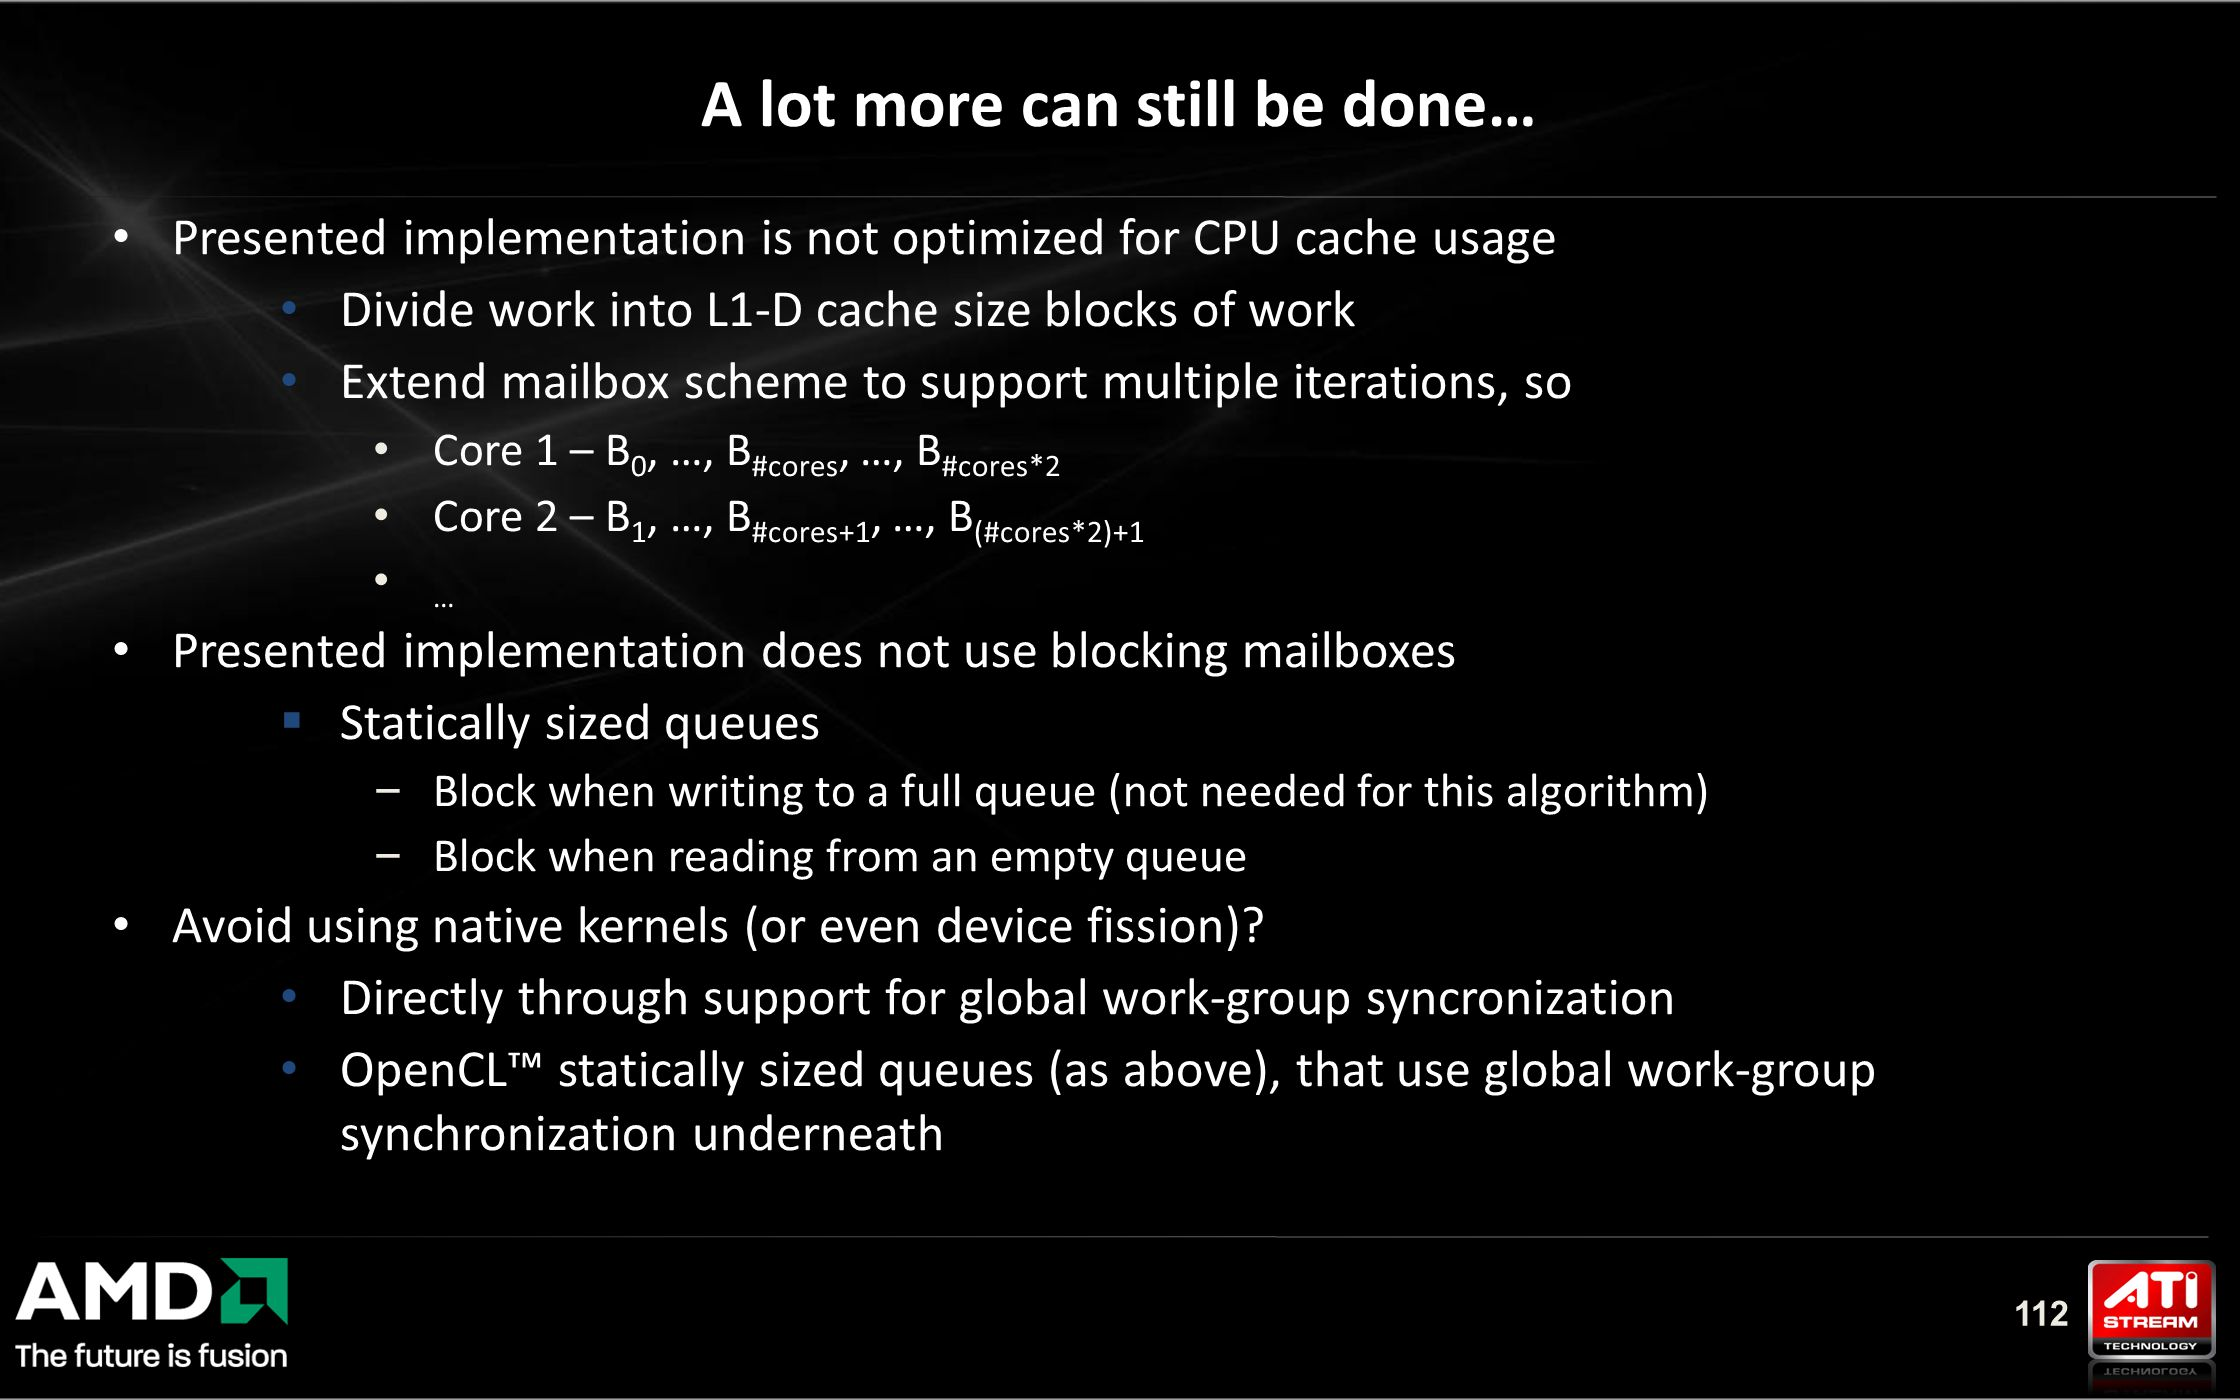 112 Presented implementation is not optimized for CPU cache usage Divide work into L1-D cache size blocks of work Extend mailbox scheme to support multiple iterations, so Core 1 – B 0, …, B #cores, …, B #cores*2 Core 2 – B 1, …, B #cores+1, …, B (#cores*2)+1 … Presented implementation does not use blocking mailboxes  Statically sized queues – Block when writing to a full queue (not needed for this algorithm) – Block when reading from an empty queue Avoid using native kernels (or even device fission).